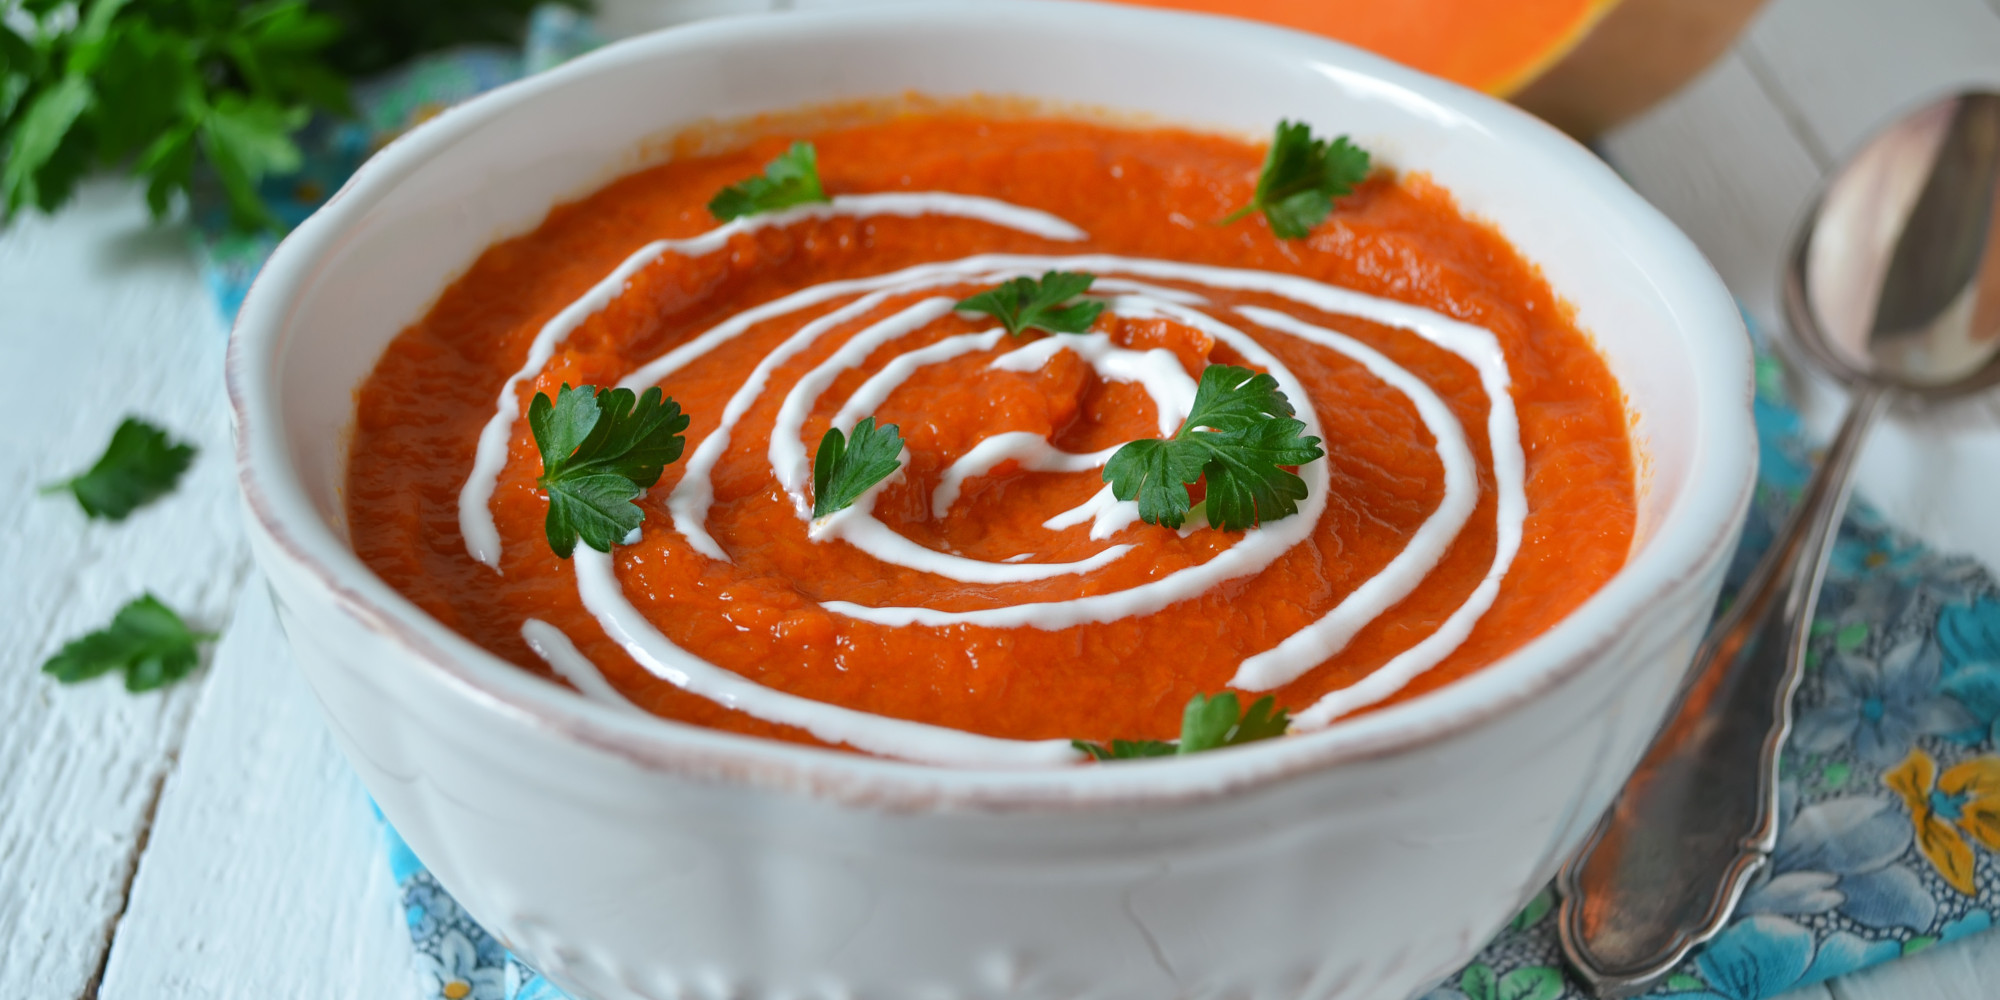 Chicken tomato soup syn free slimmingworld indian recipes chicken tomato soup syn free slimmingworld indian recipes cookwithanisa recipeoftheday huffpost forumfinder Gallery